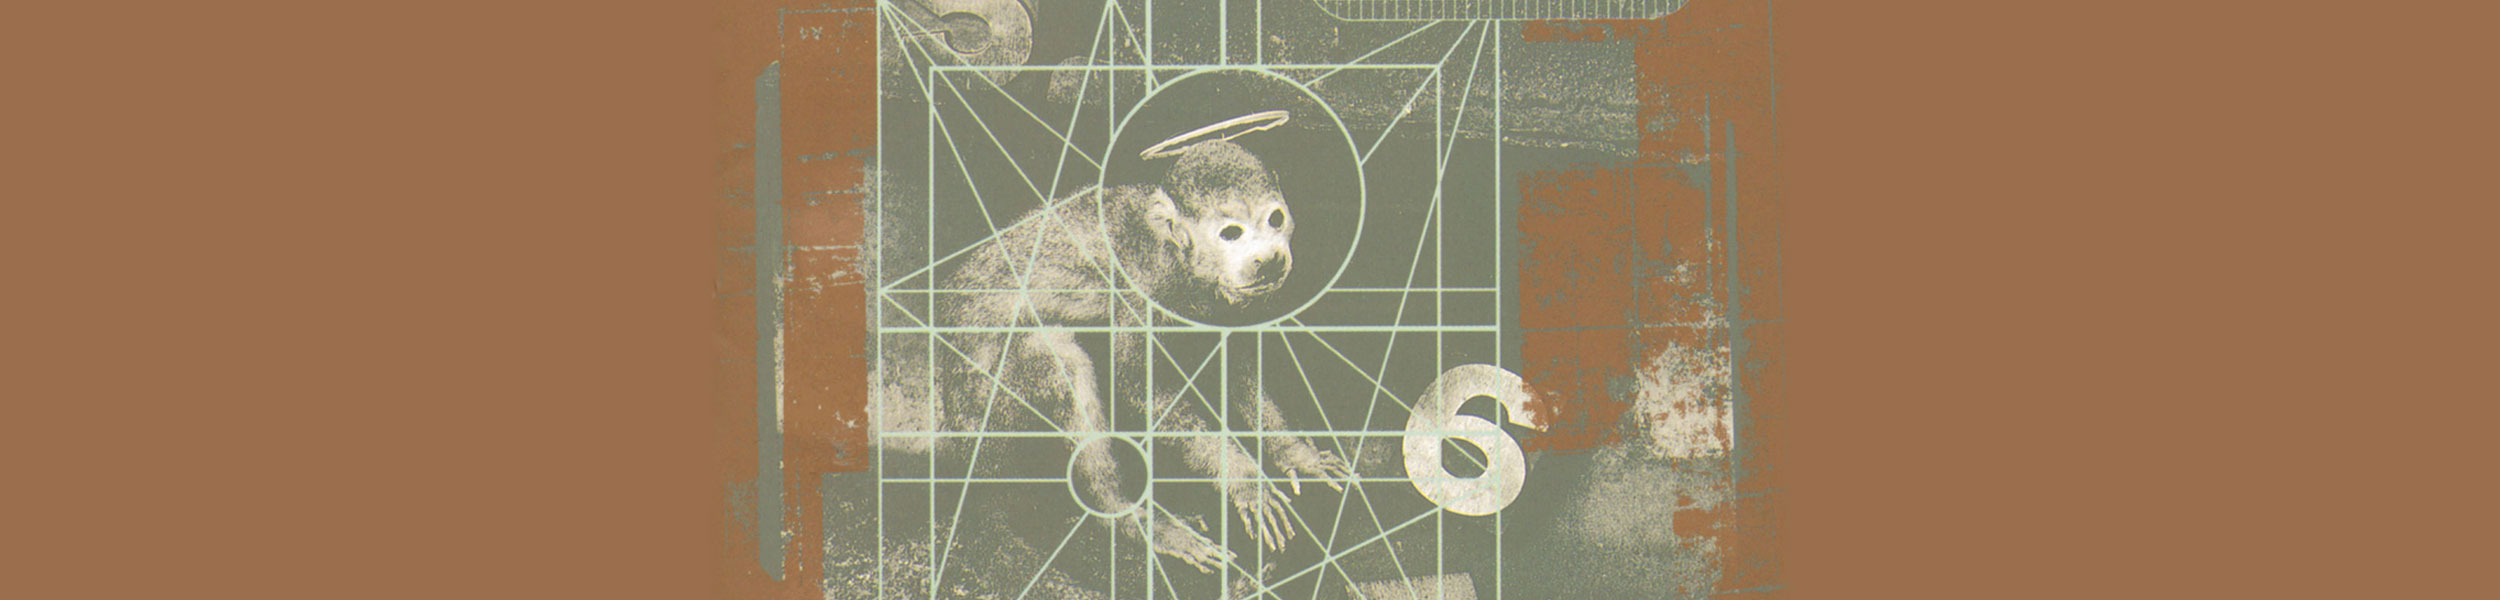 Pixies - Out Now: Pixies - Doolittle 25